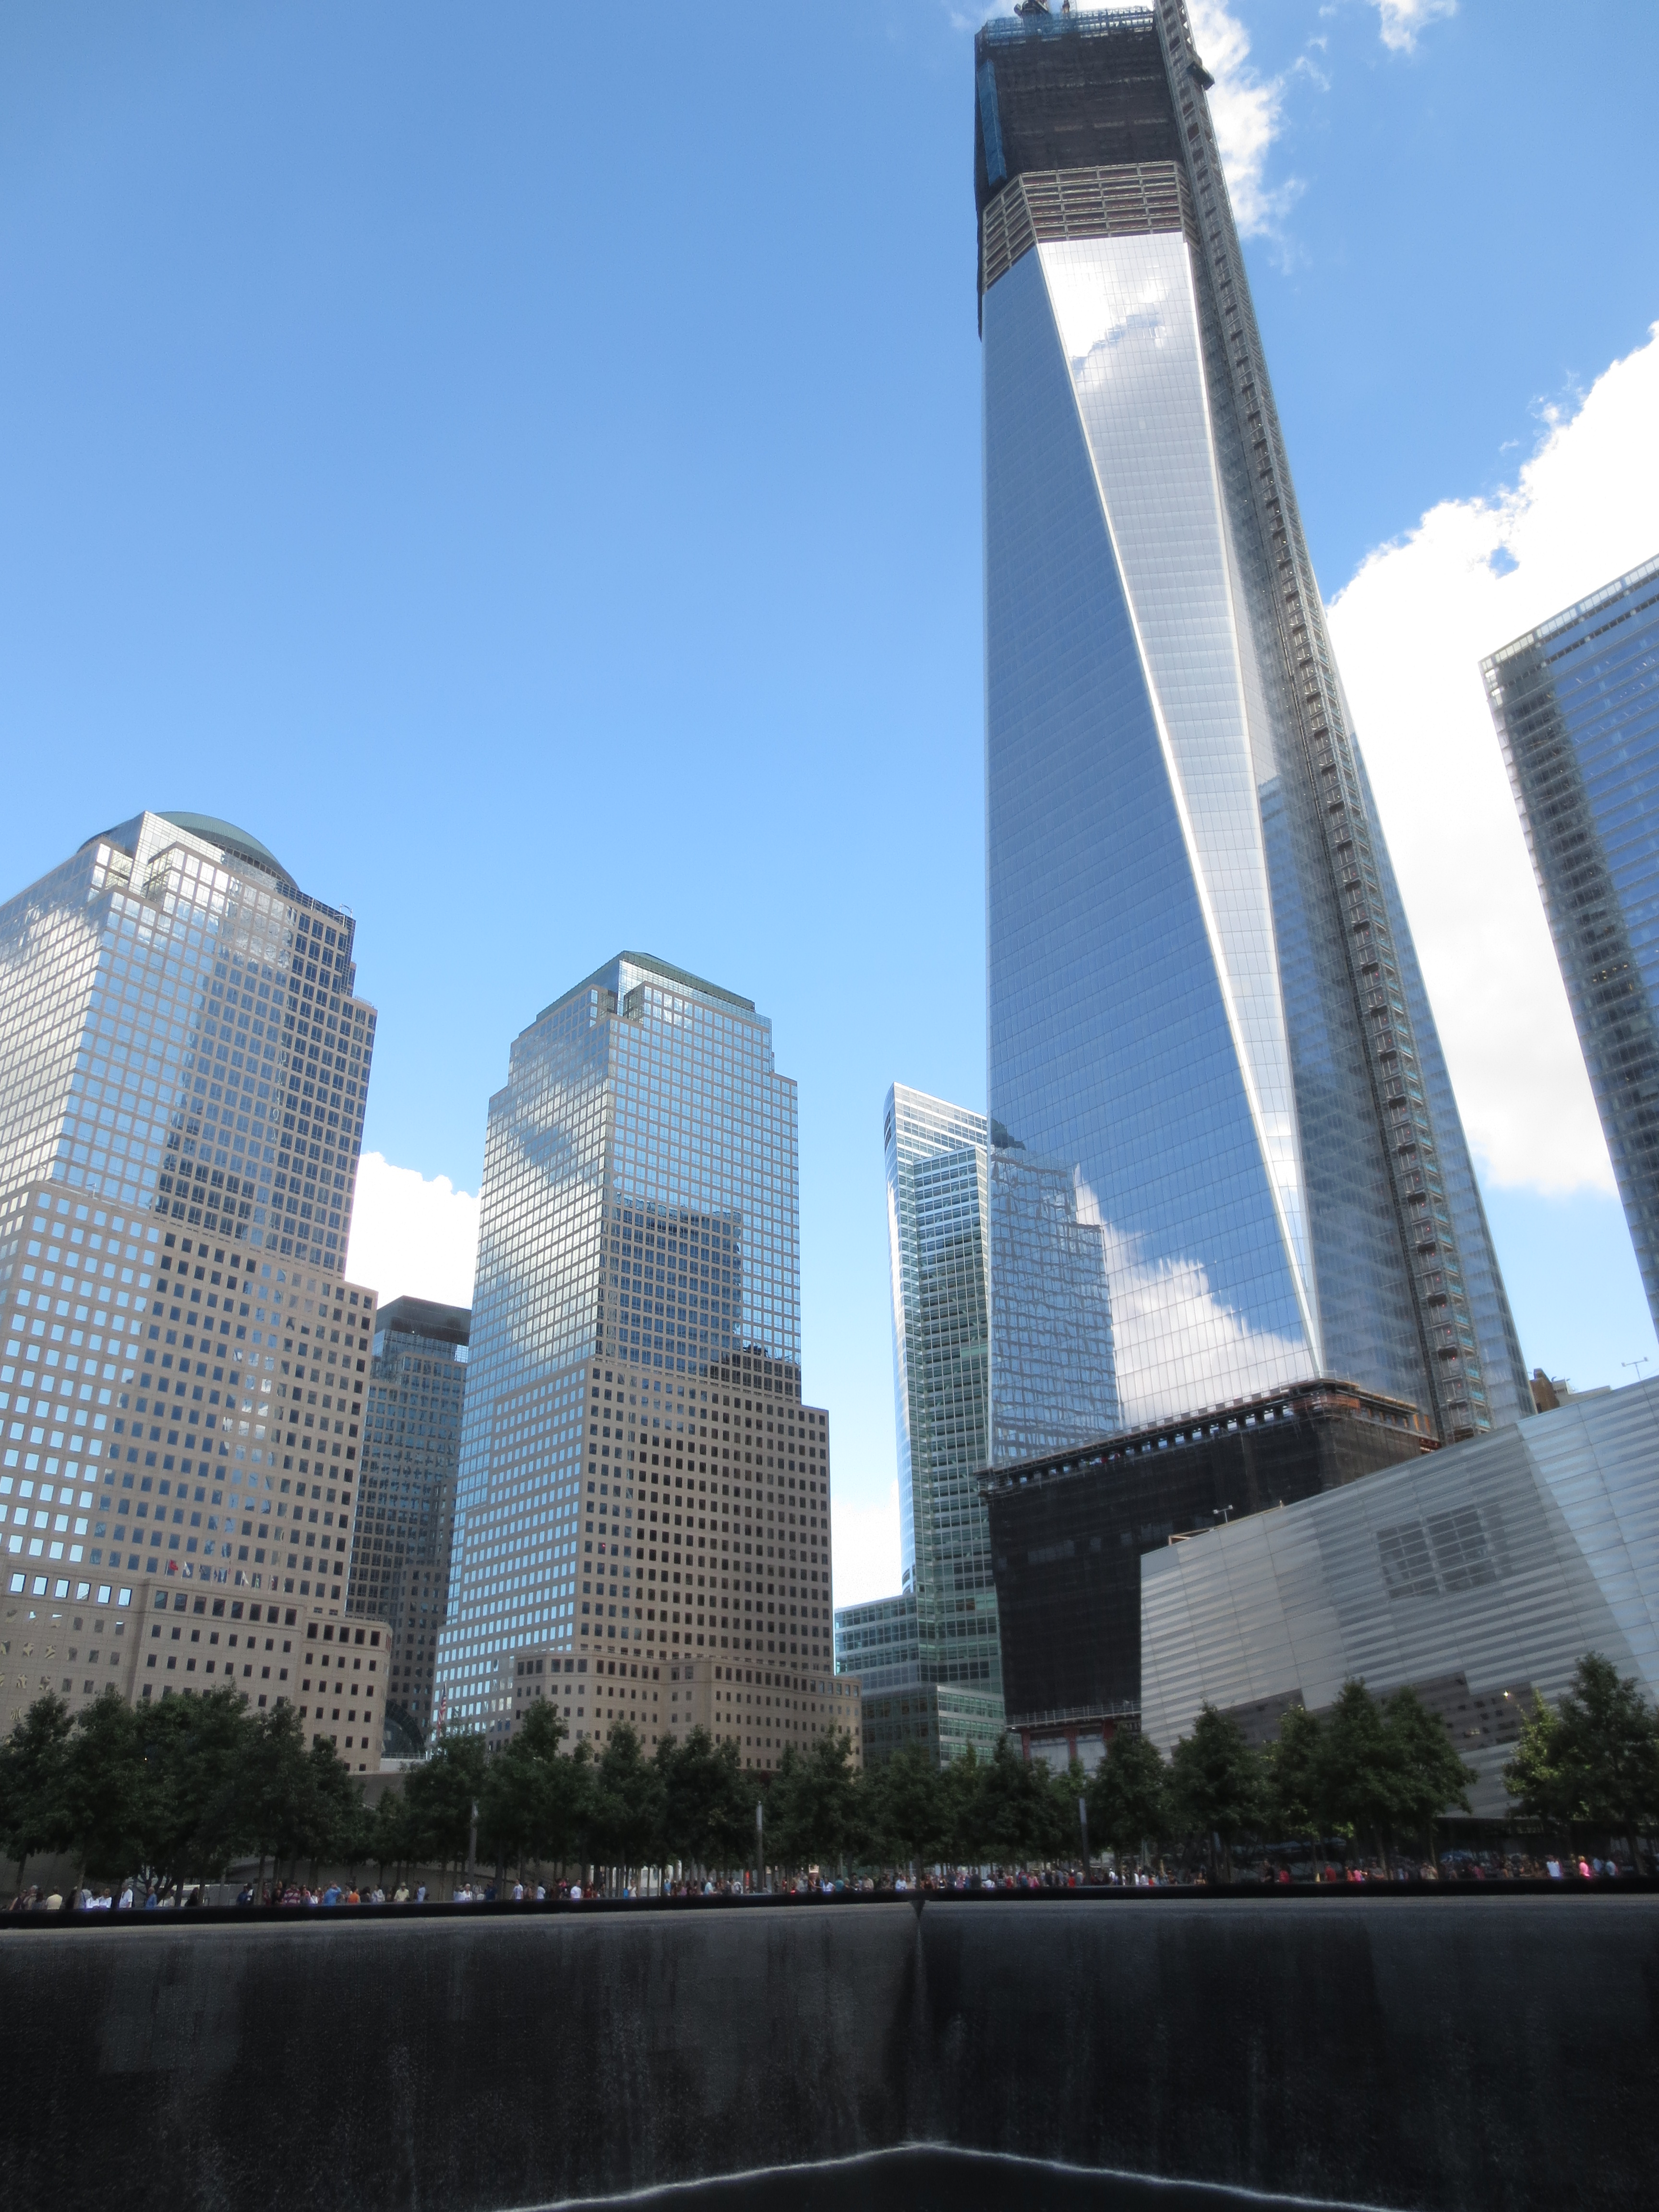 Talking to 9/11 truthers2